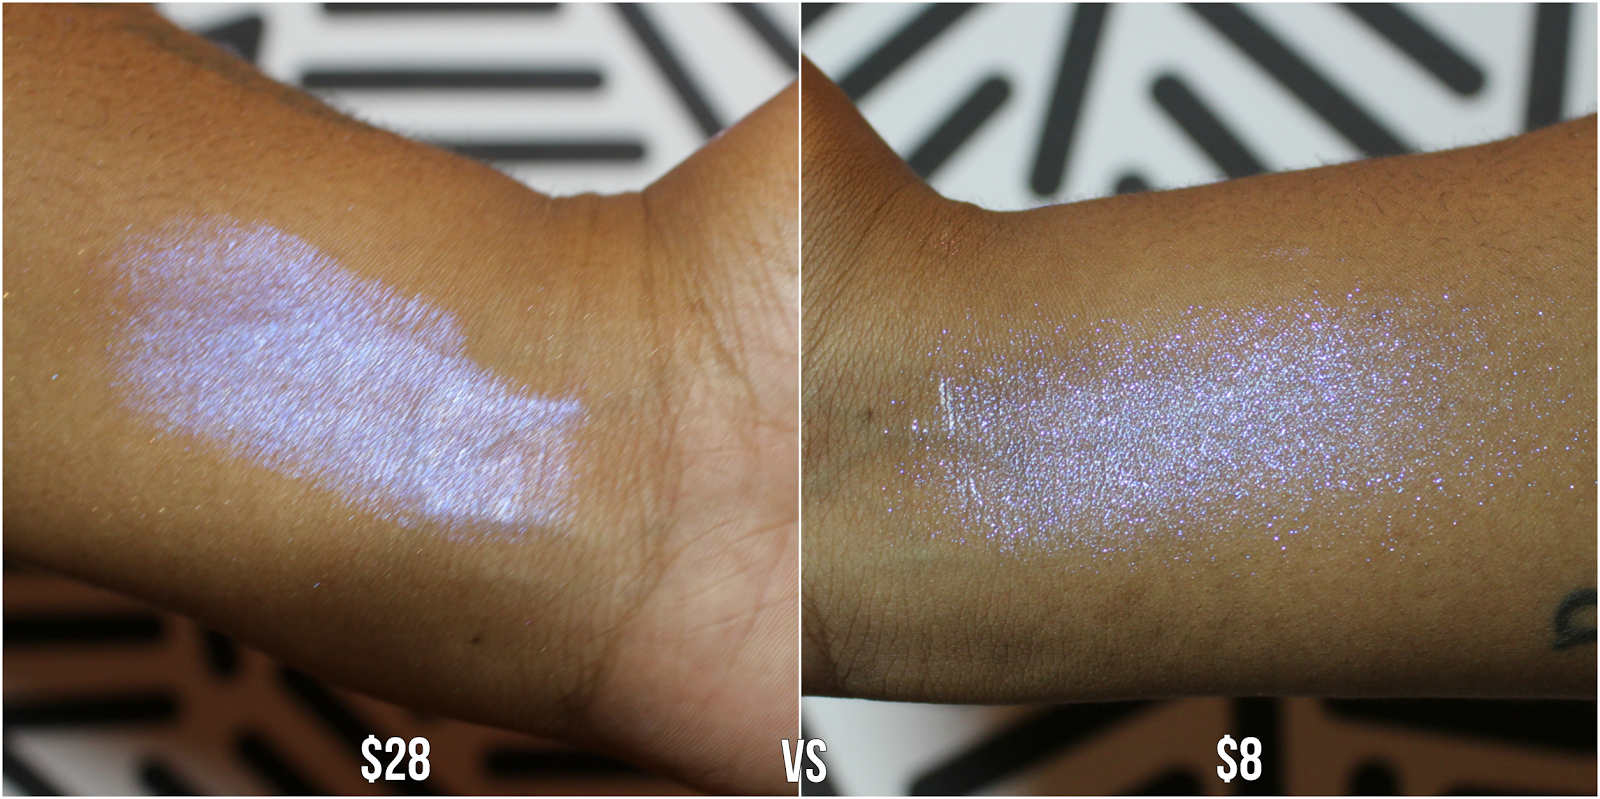 Beauty: Find That Dupe-Holographic Highlighters!